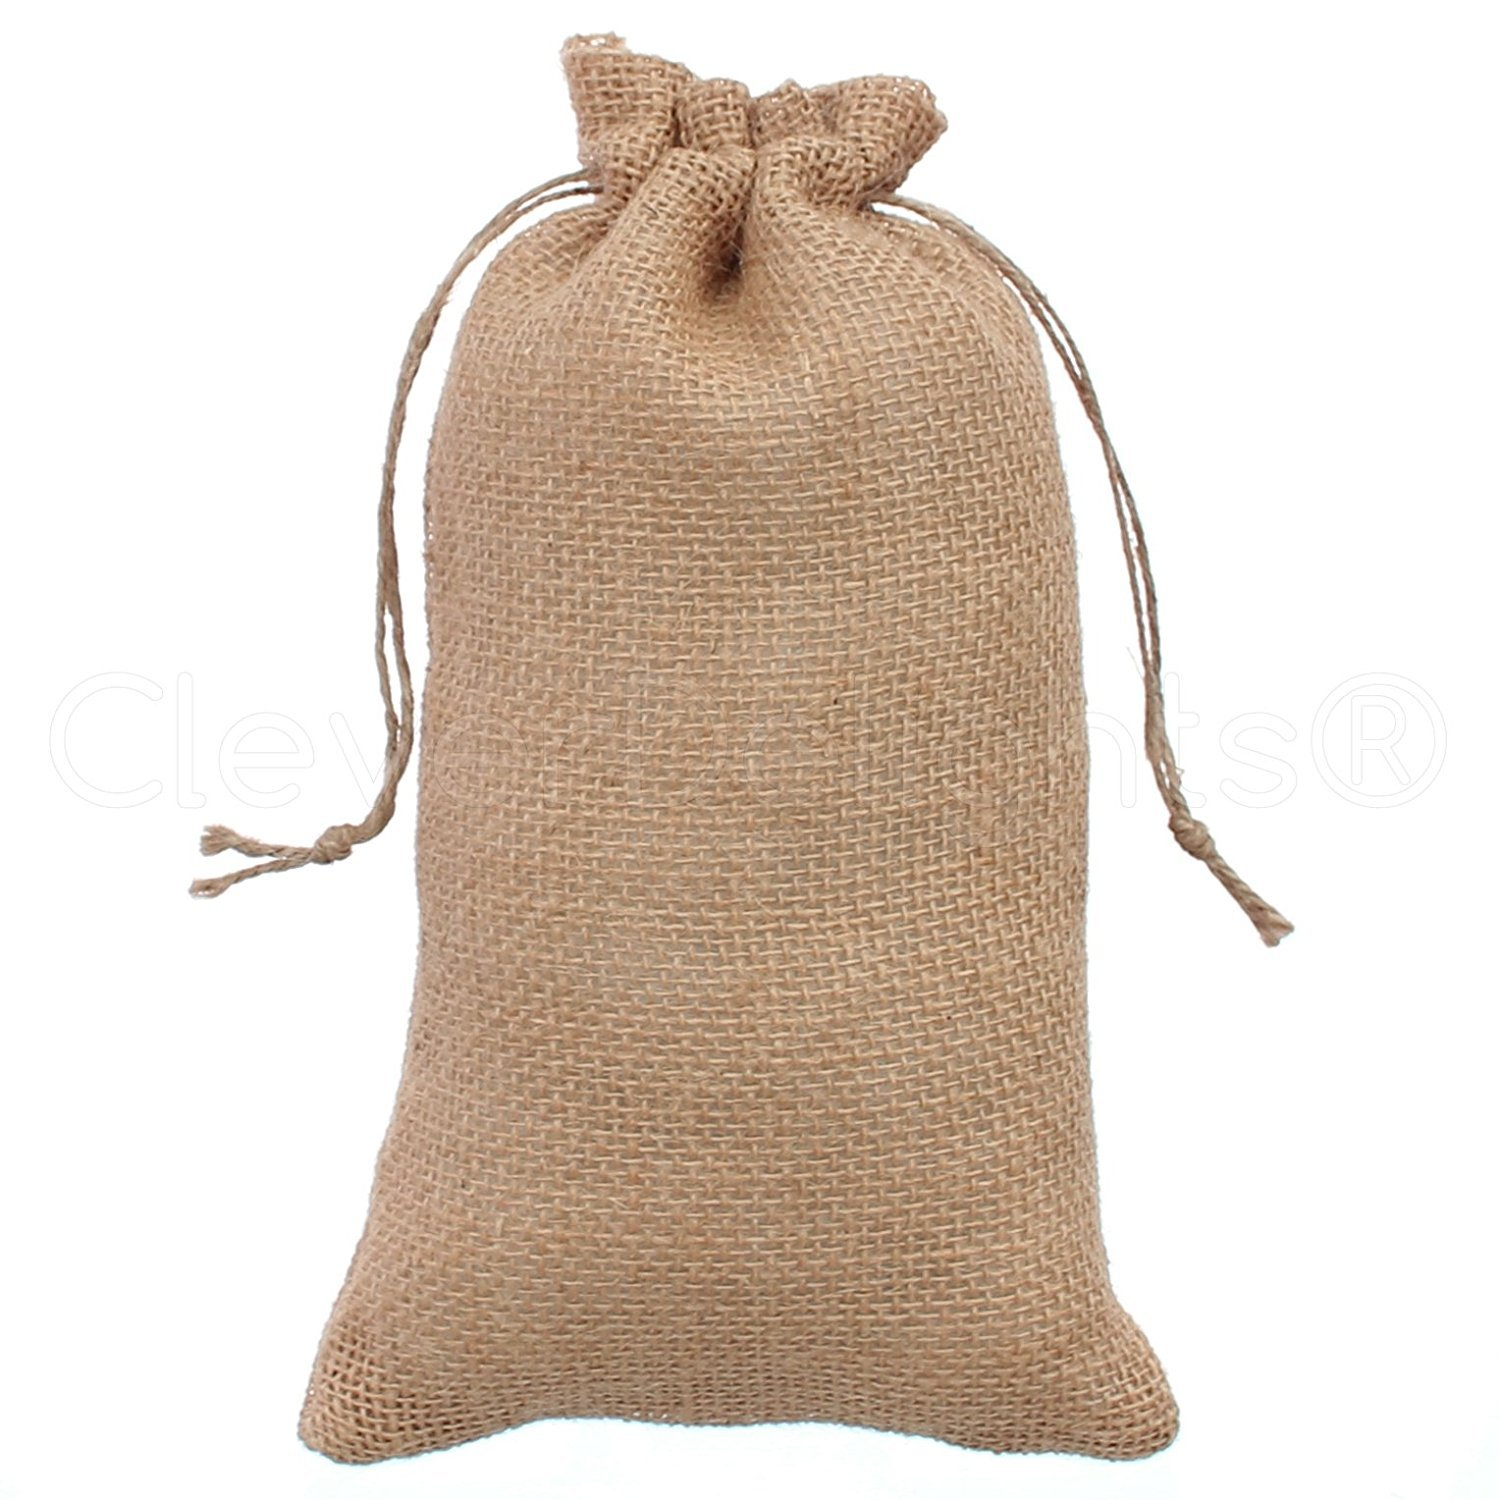 """CleverDelights 6"""" x 10"""" Burlap Bags with Natural Jute Drawstring - 5 Pack"""